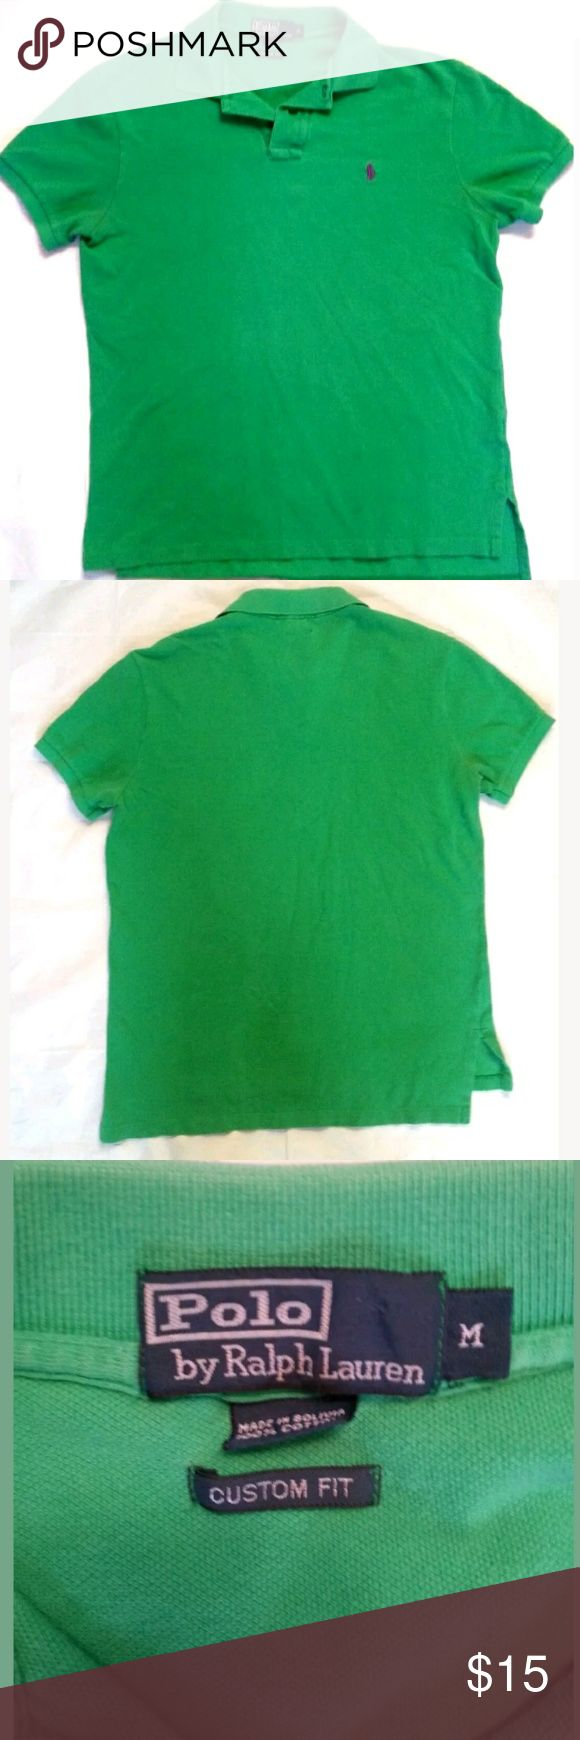 Polo Ralph Lauren Green Polo Shirt size Medium Polo Ralph Lauren Green Polo Shirt size Medium Observe all pictures, has normal fading from standard wash and wear. Has a tiny hole underneath button area. Not noticeable unless at close eye level. Great color,classic look  Armpit to Armpit-approx 21 inches  Shoulder to Hem- approx 25 inches  Measurements are estimates Polo by Ralph Lauren Shirts Polos